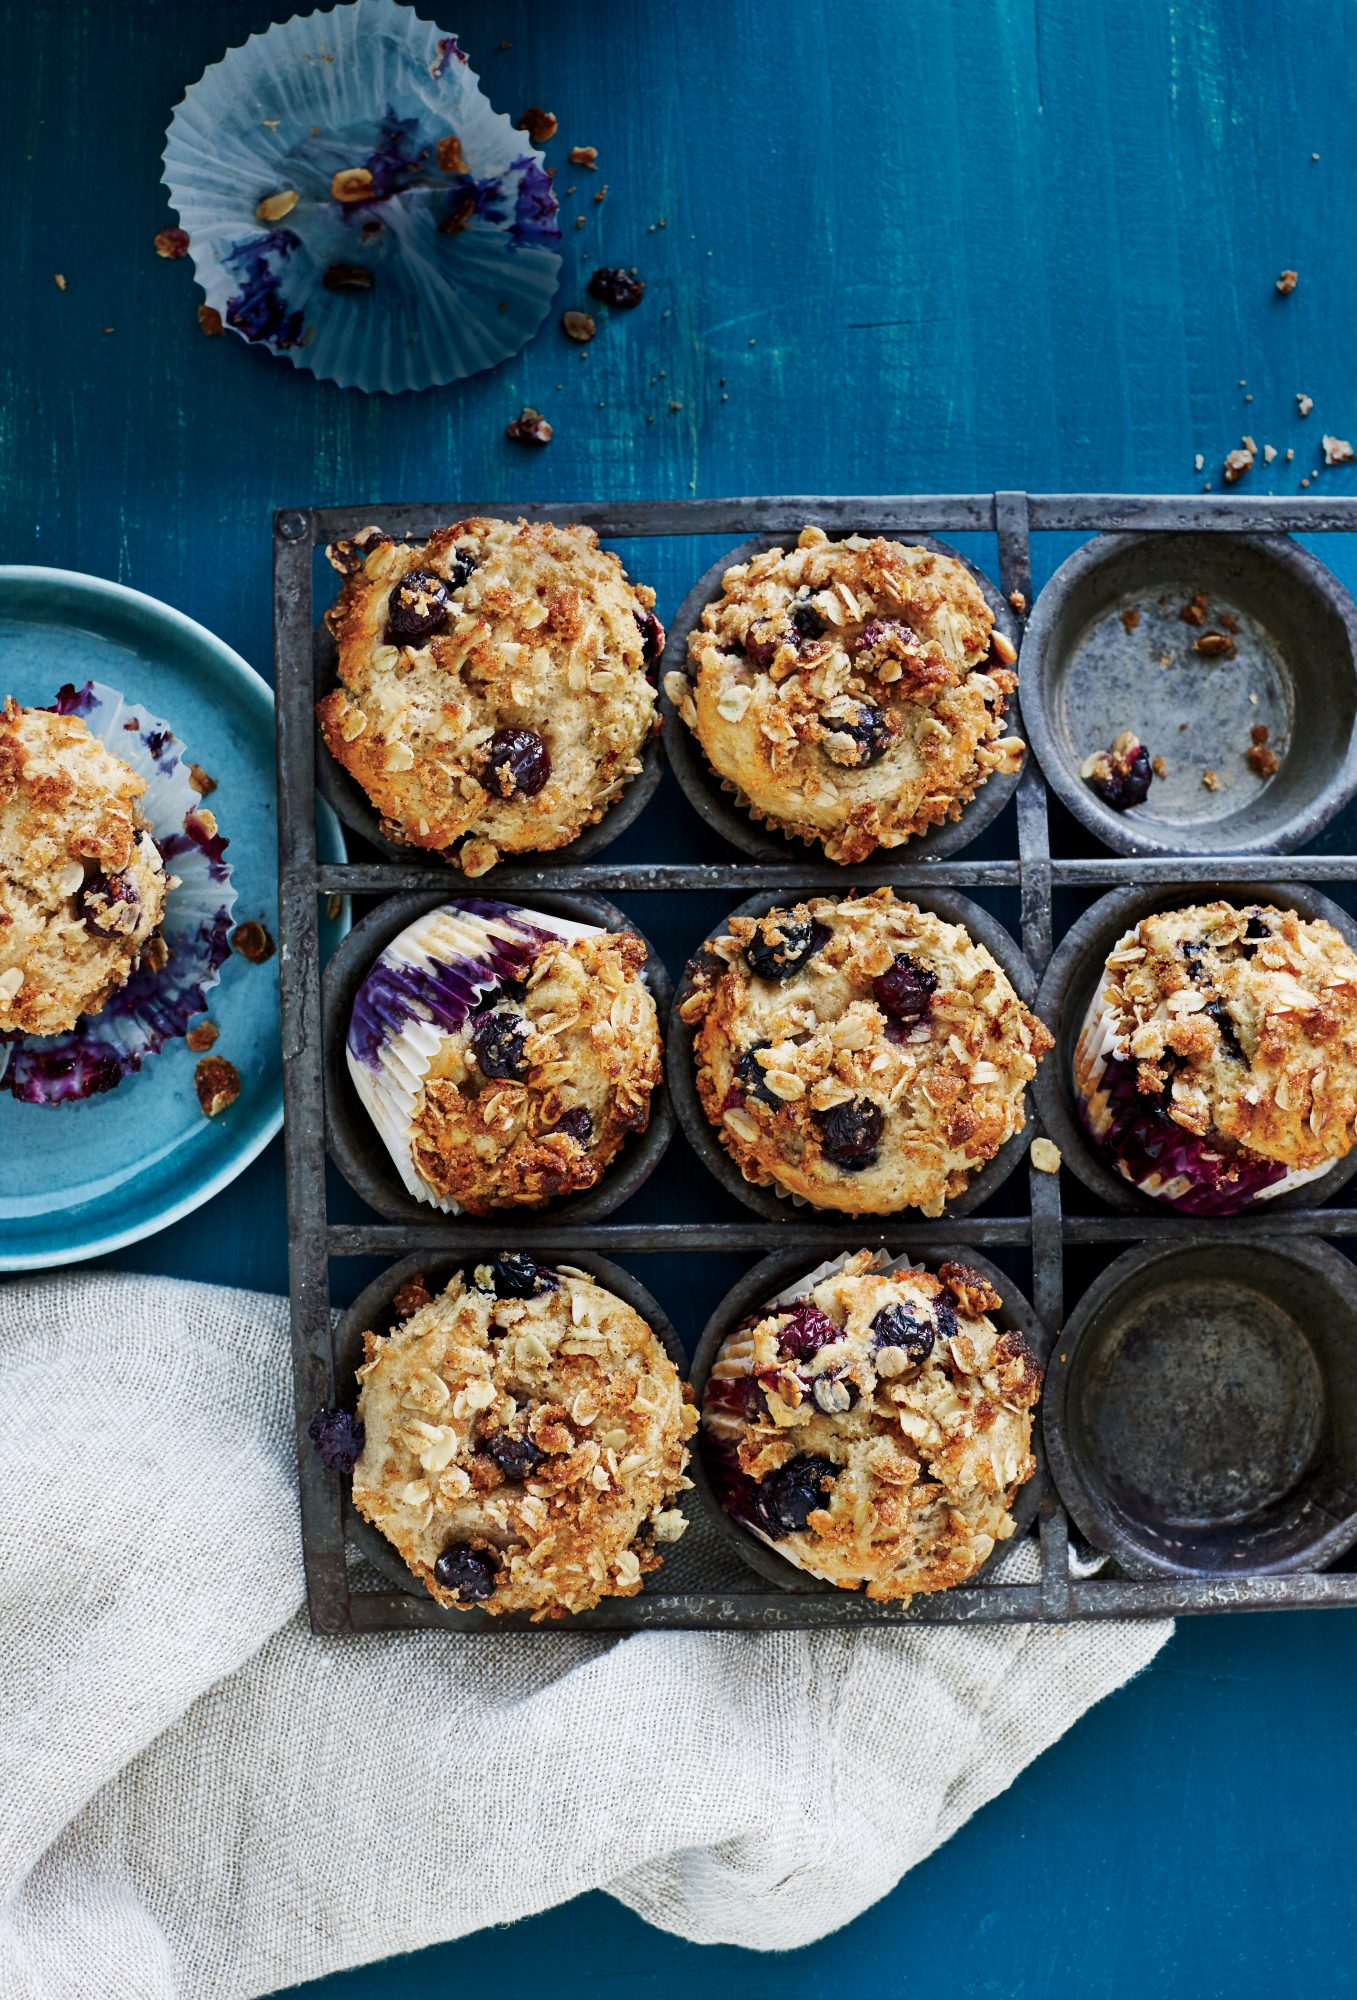 ck-Blueberry Sour Cream Muffins Image